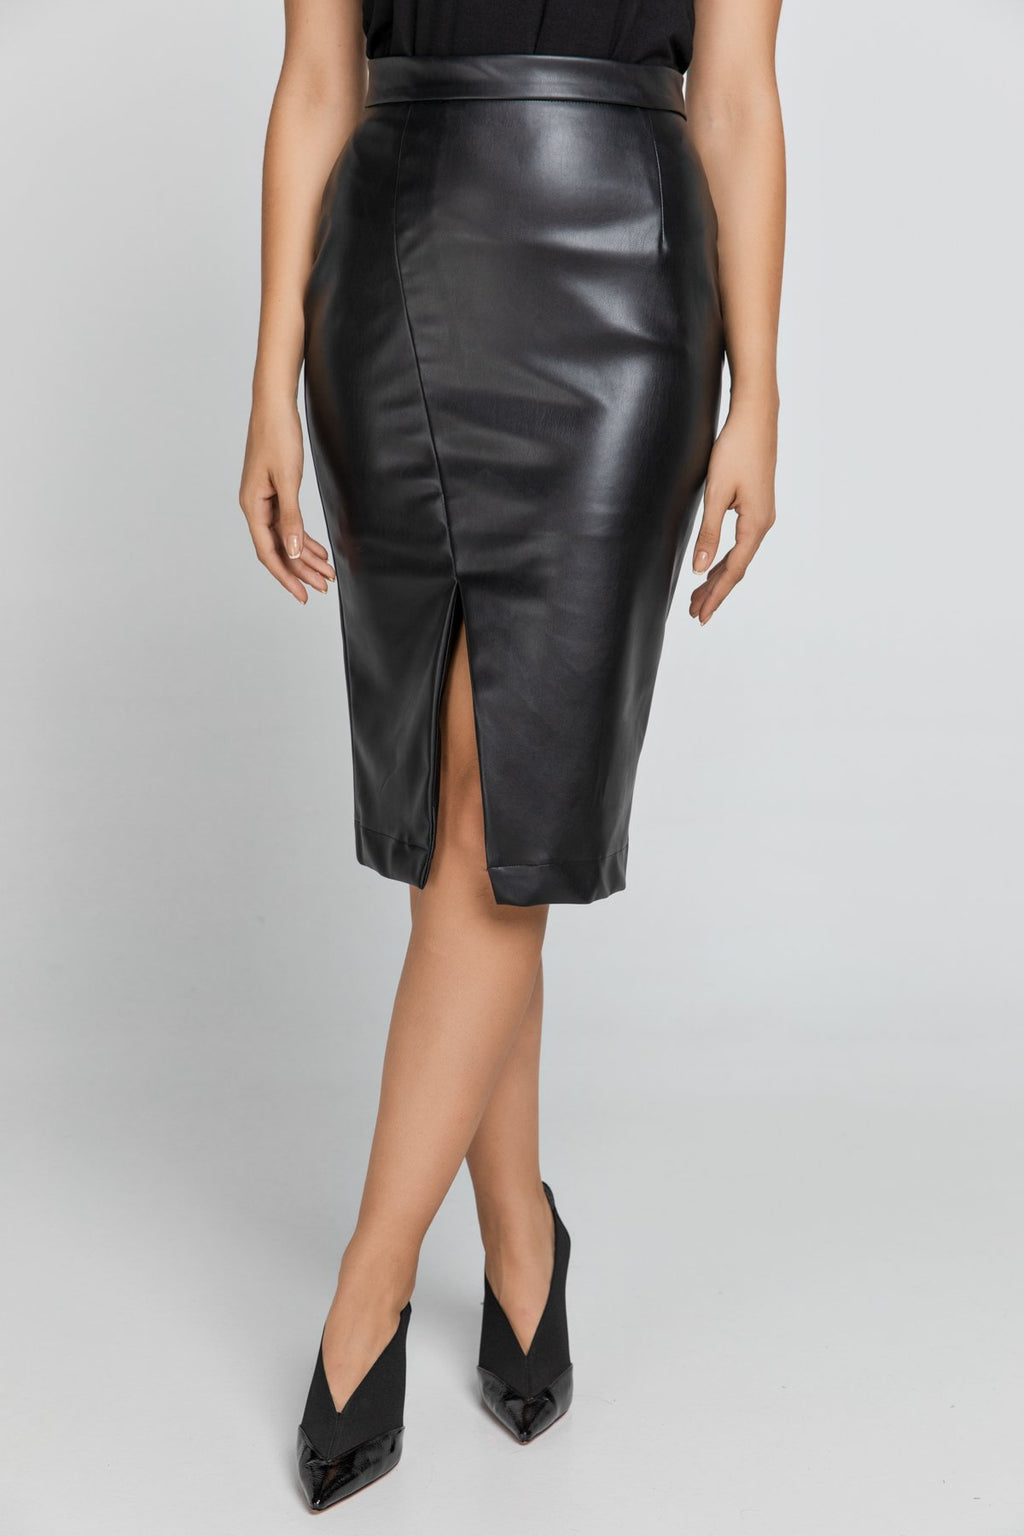 Black Faux Leather Pencil Slit Skirt by Conquista Fashion - KATANA FASHION BOUTIQUE